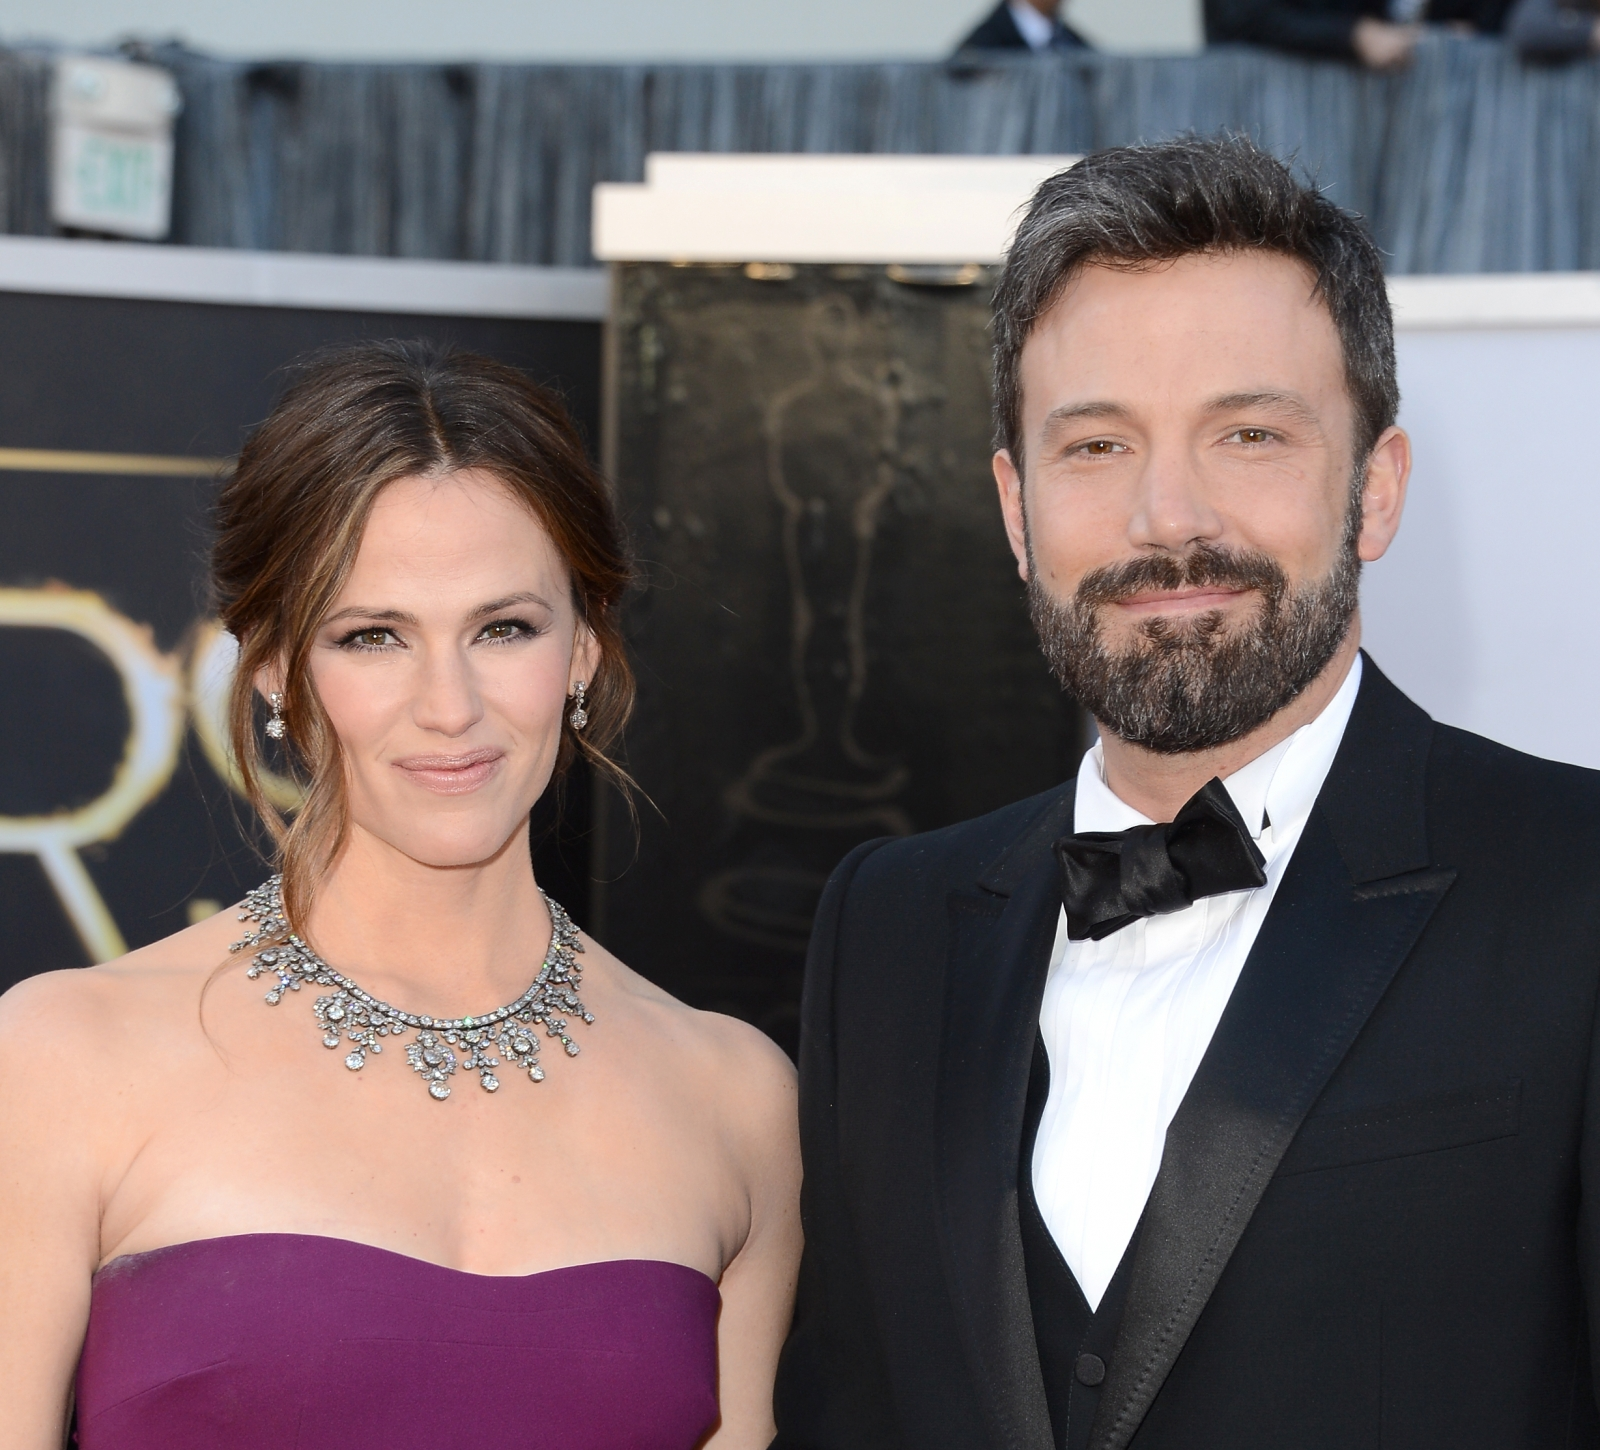 Ben Affleck and Jennifer Garner reportedly separated